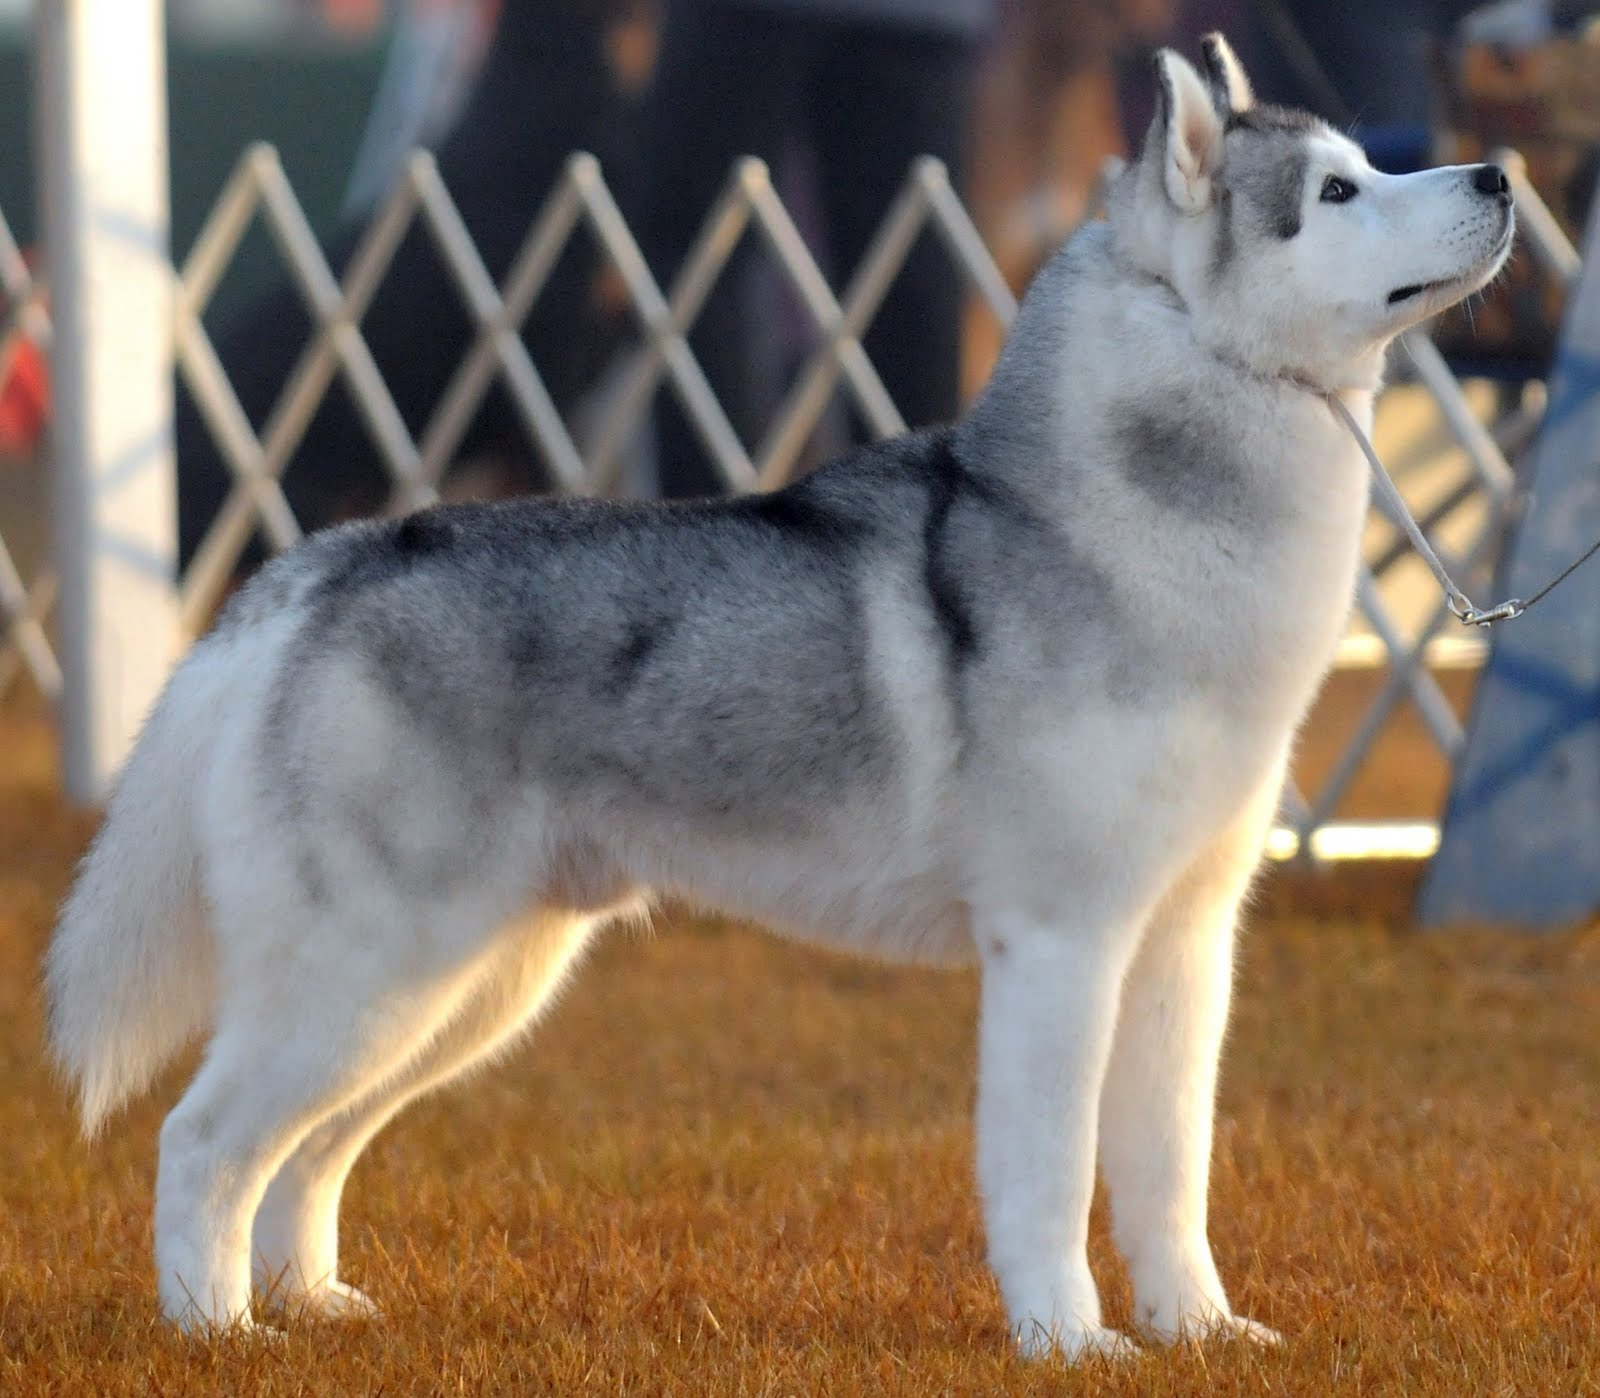 The Siberian Husky is a beautiful dog breed with a thick coat that comes in a multitude of colors and markings. Their blue or multi-colored eyes and striking facial masks only add to the appeal of this breed, which originated in Siberia.